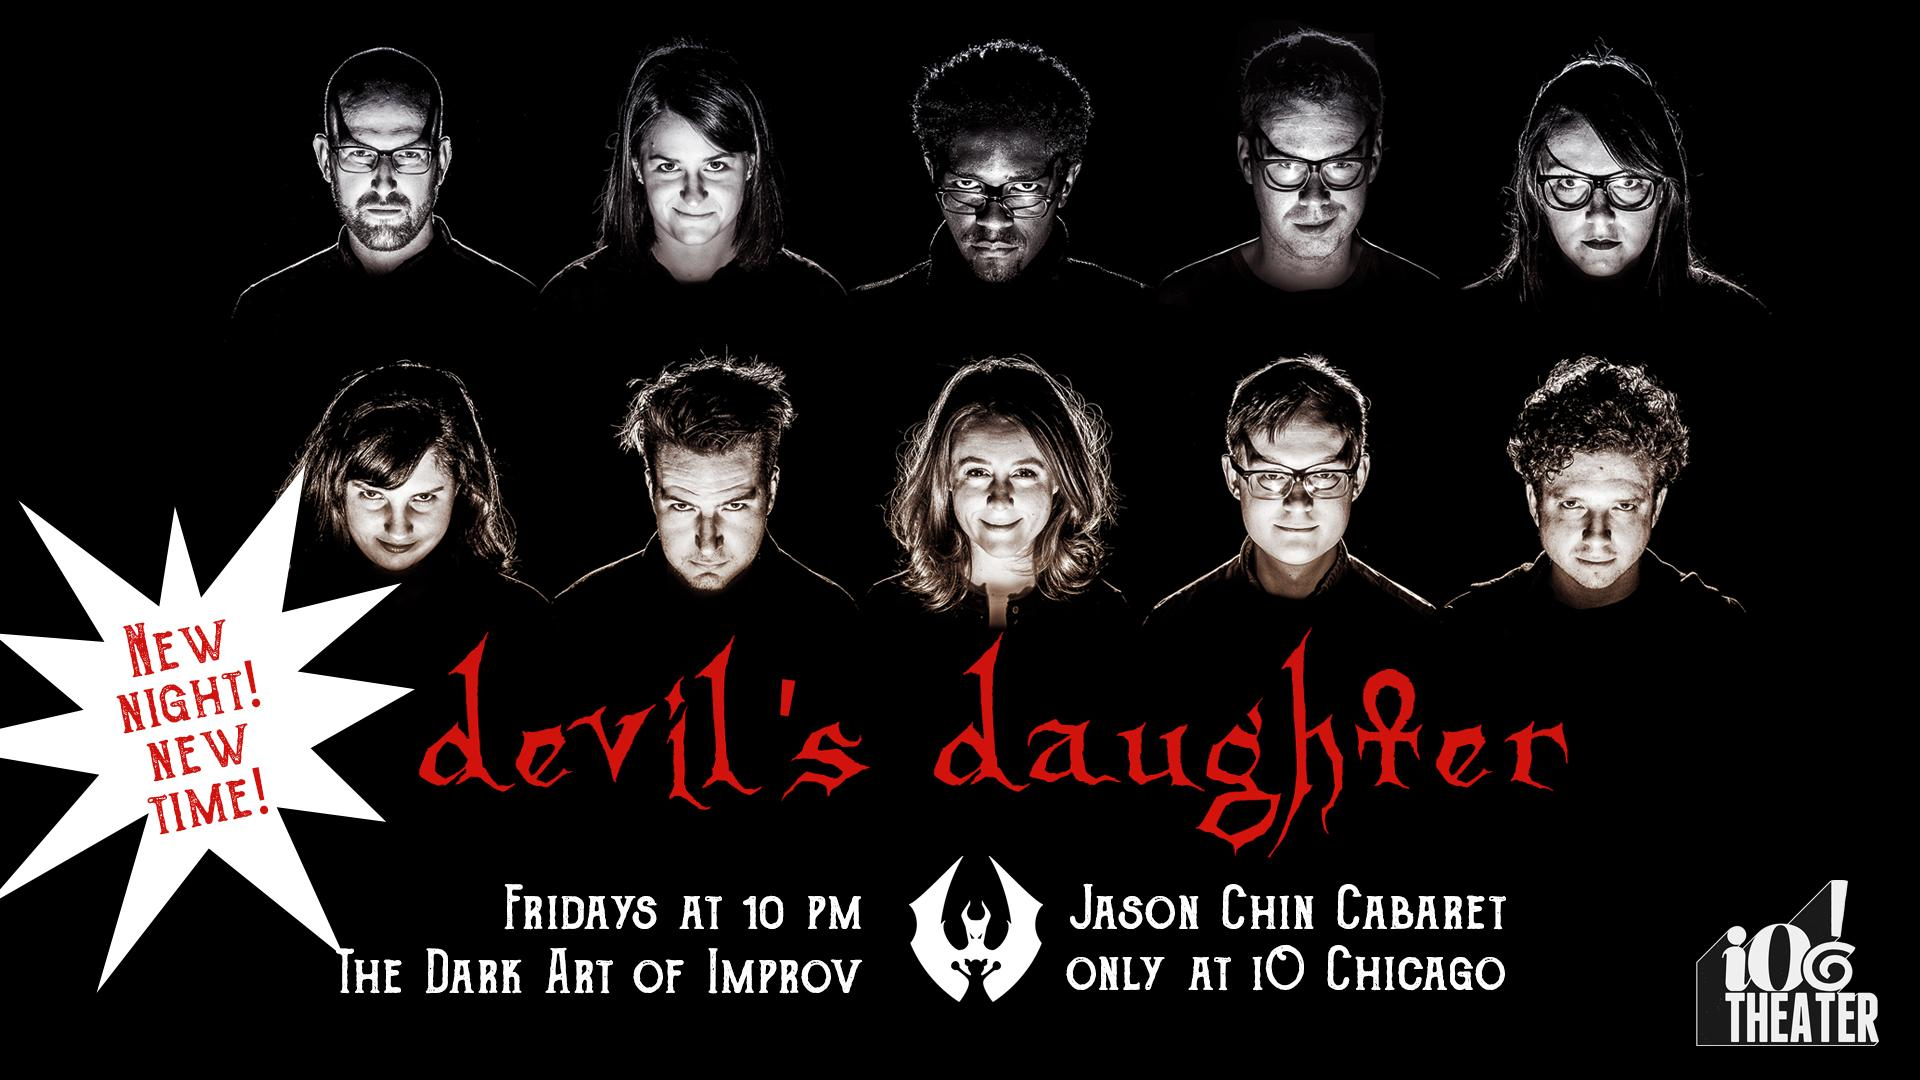 HAROLD NIGHT w/ Devil's Daughter & Mothership